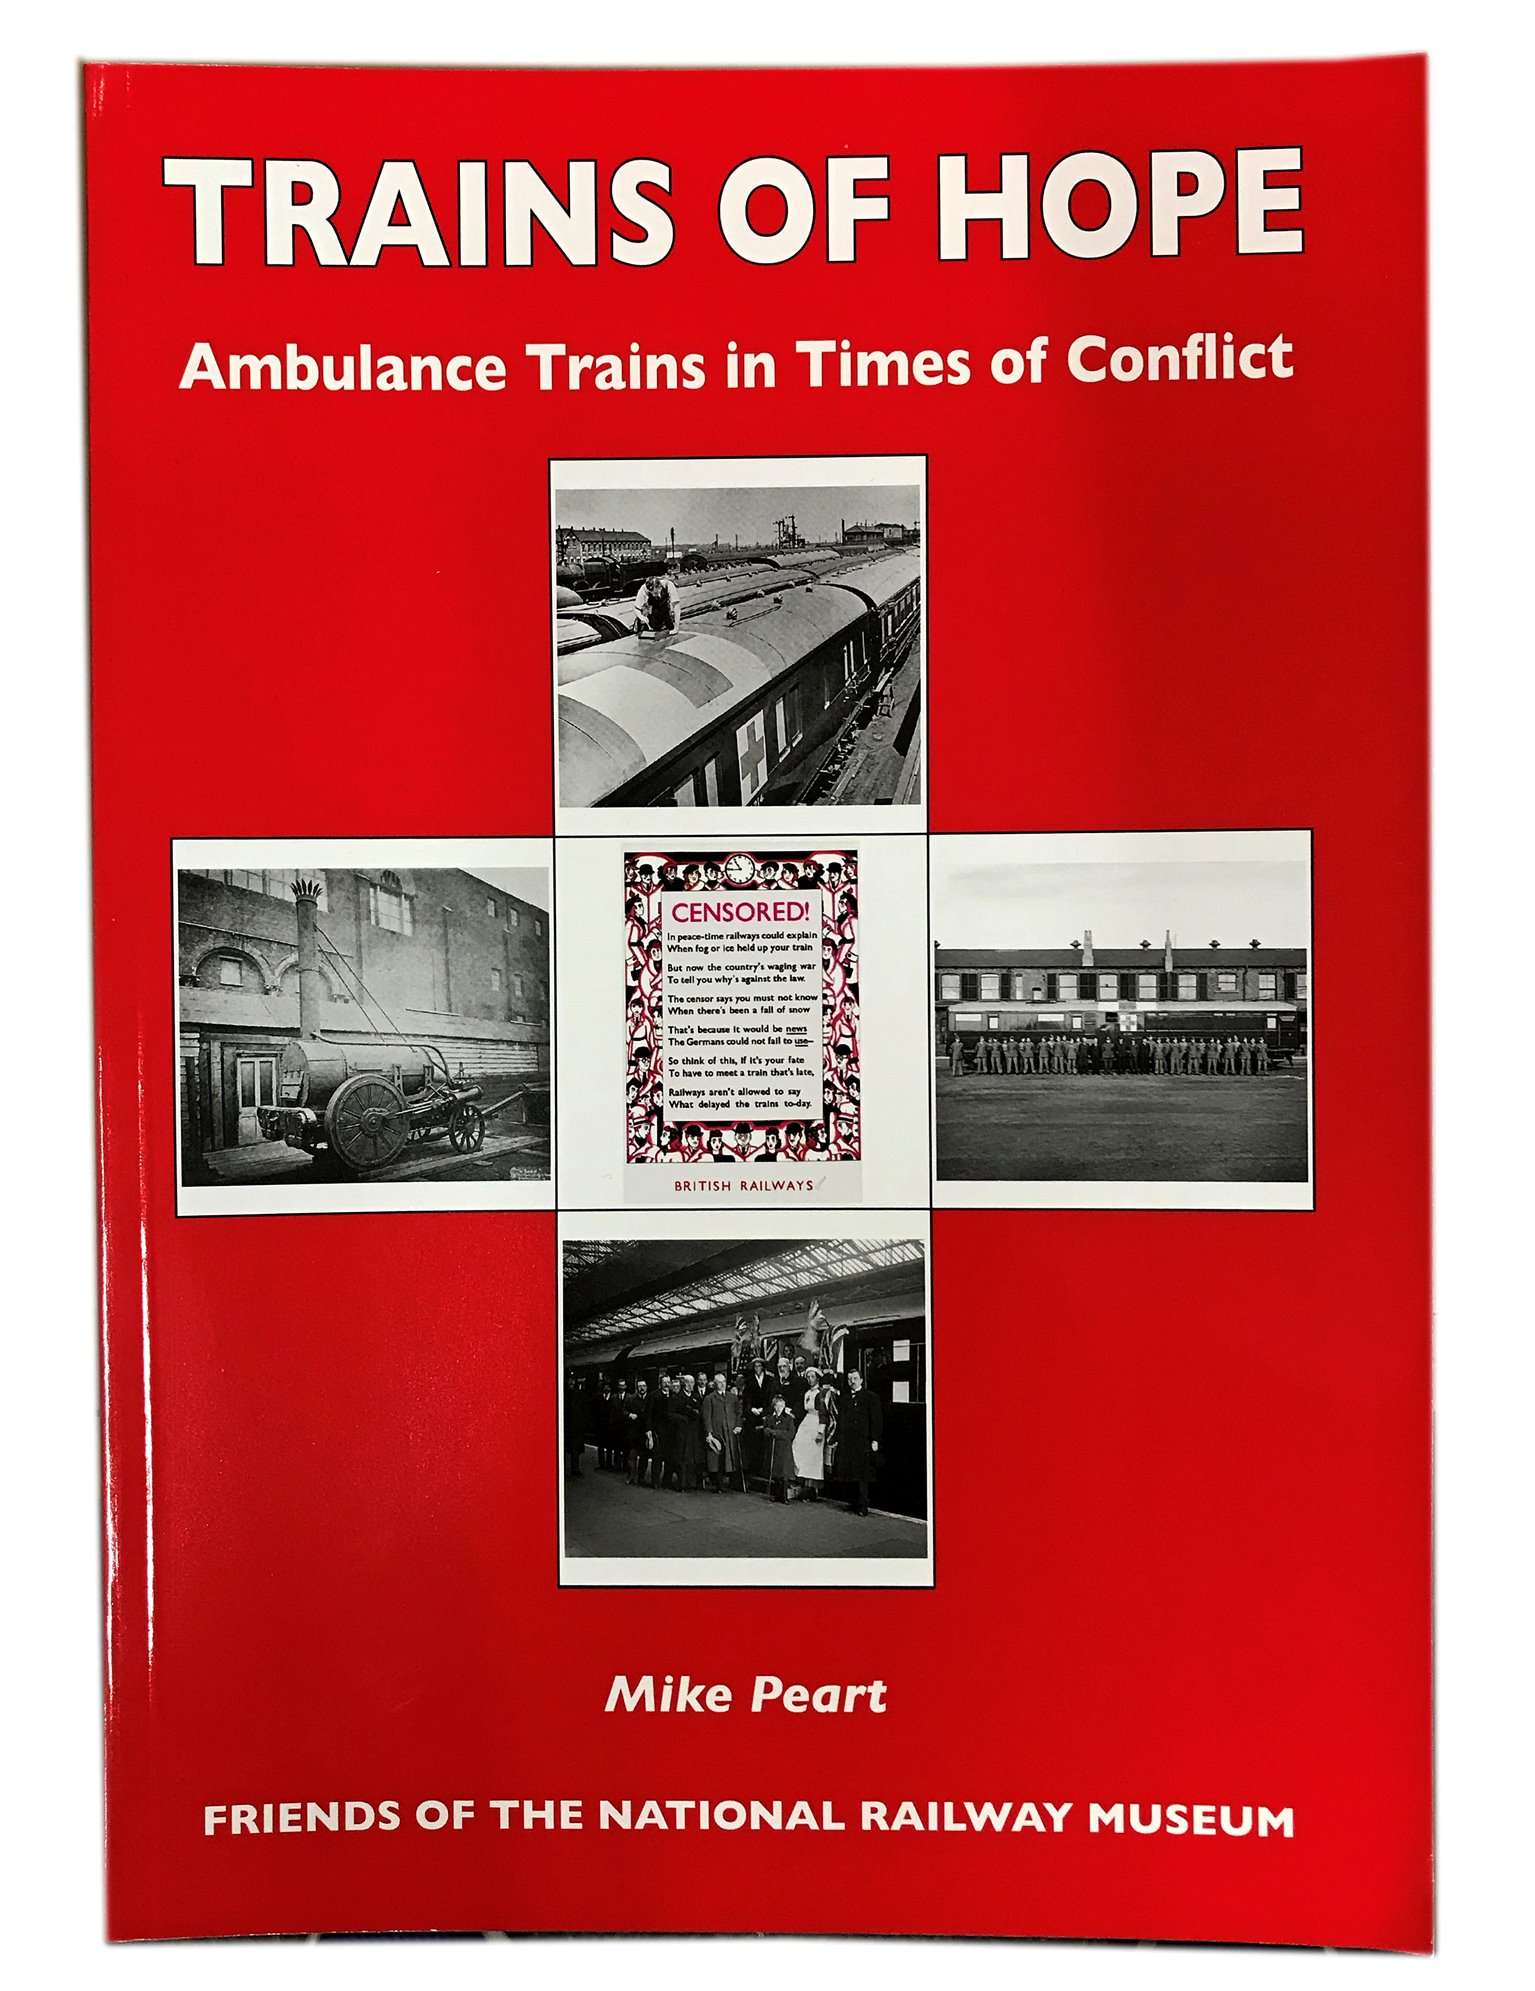 Trains of Hope - Ambulance Trains in Times of Conflict